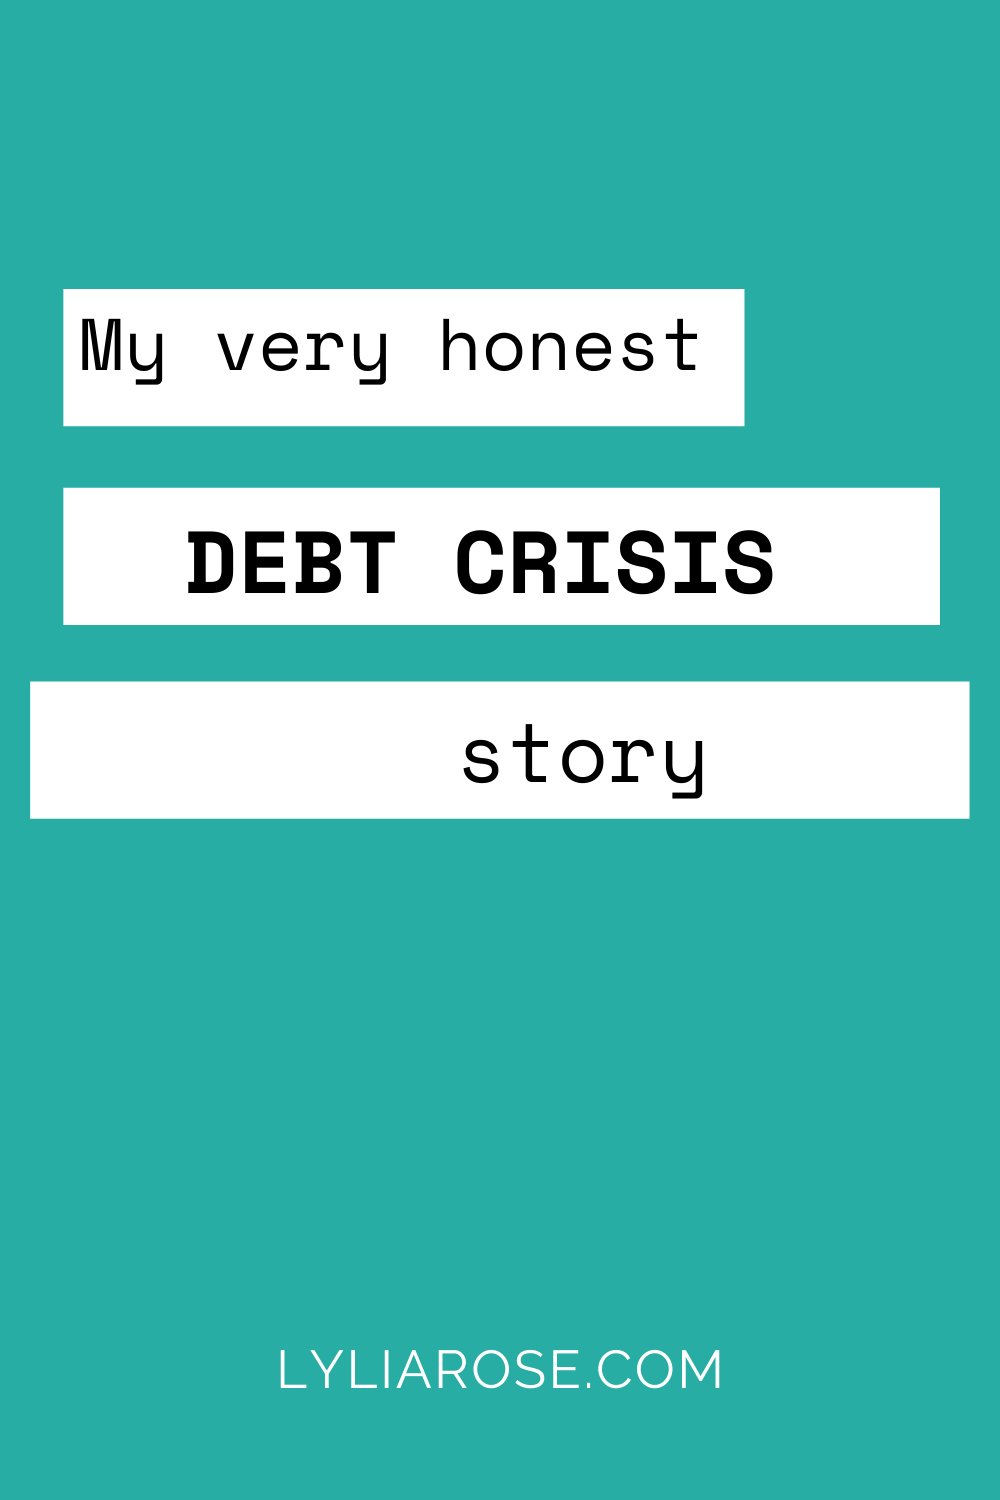 Read a very honest account of how I got into £17500 of personal irresponsible debt before I was even 20 years old and how I paid every last penny back! #debt #debtstory #personalfinance #shoppingaddiction #moneyworries #money #moneyblogger #finance #moneyblog